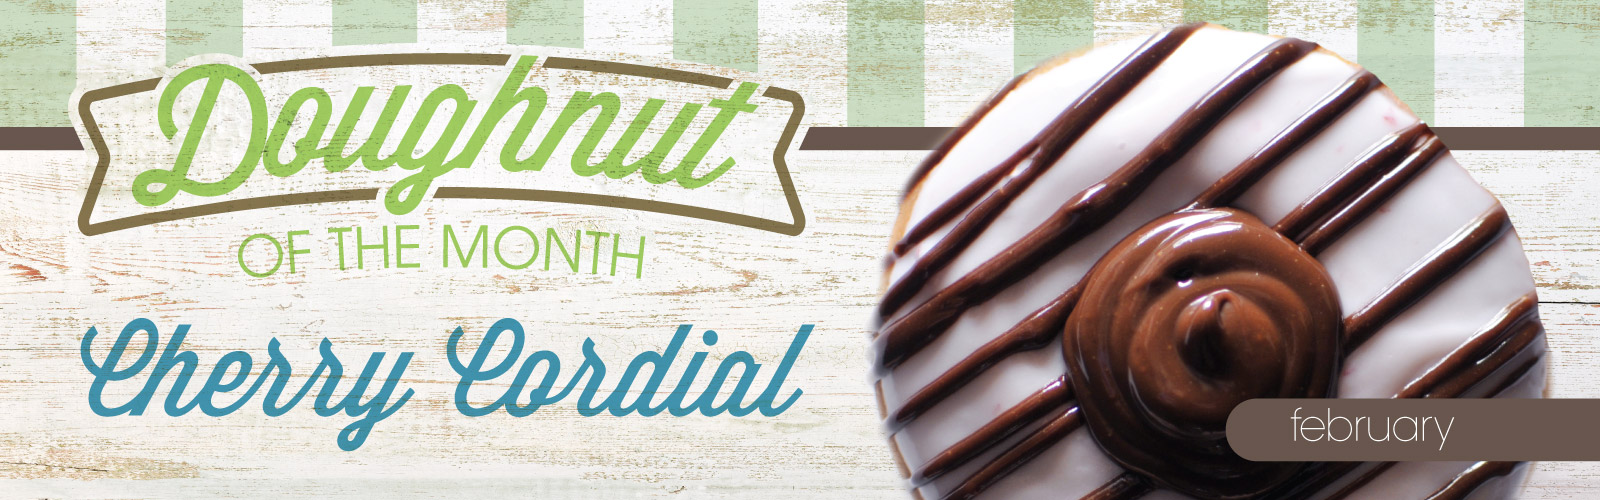 Cherry Cordial Doughnut of the Month